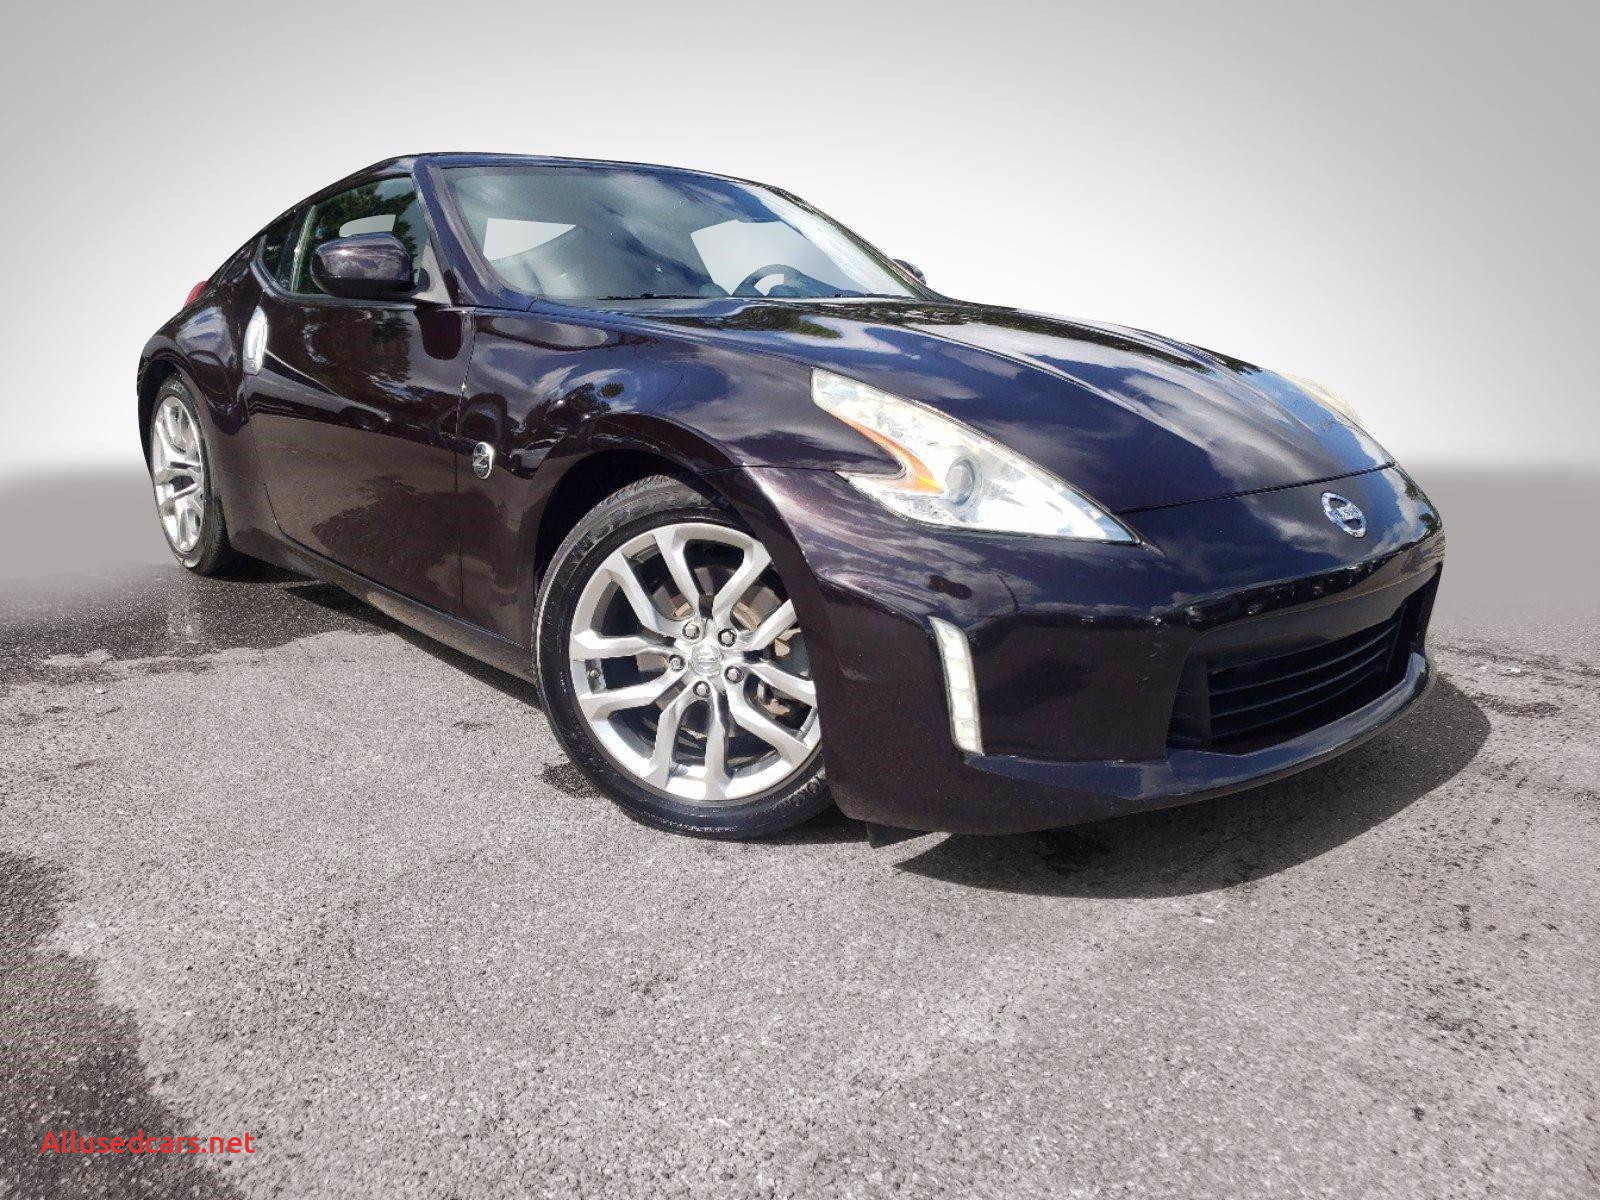 Nissan Z Cars for Sale Near Me Awesome Used Nissan 370z New and Used Cadillac for Sale